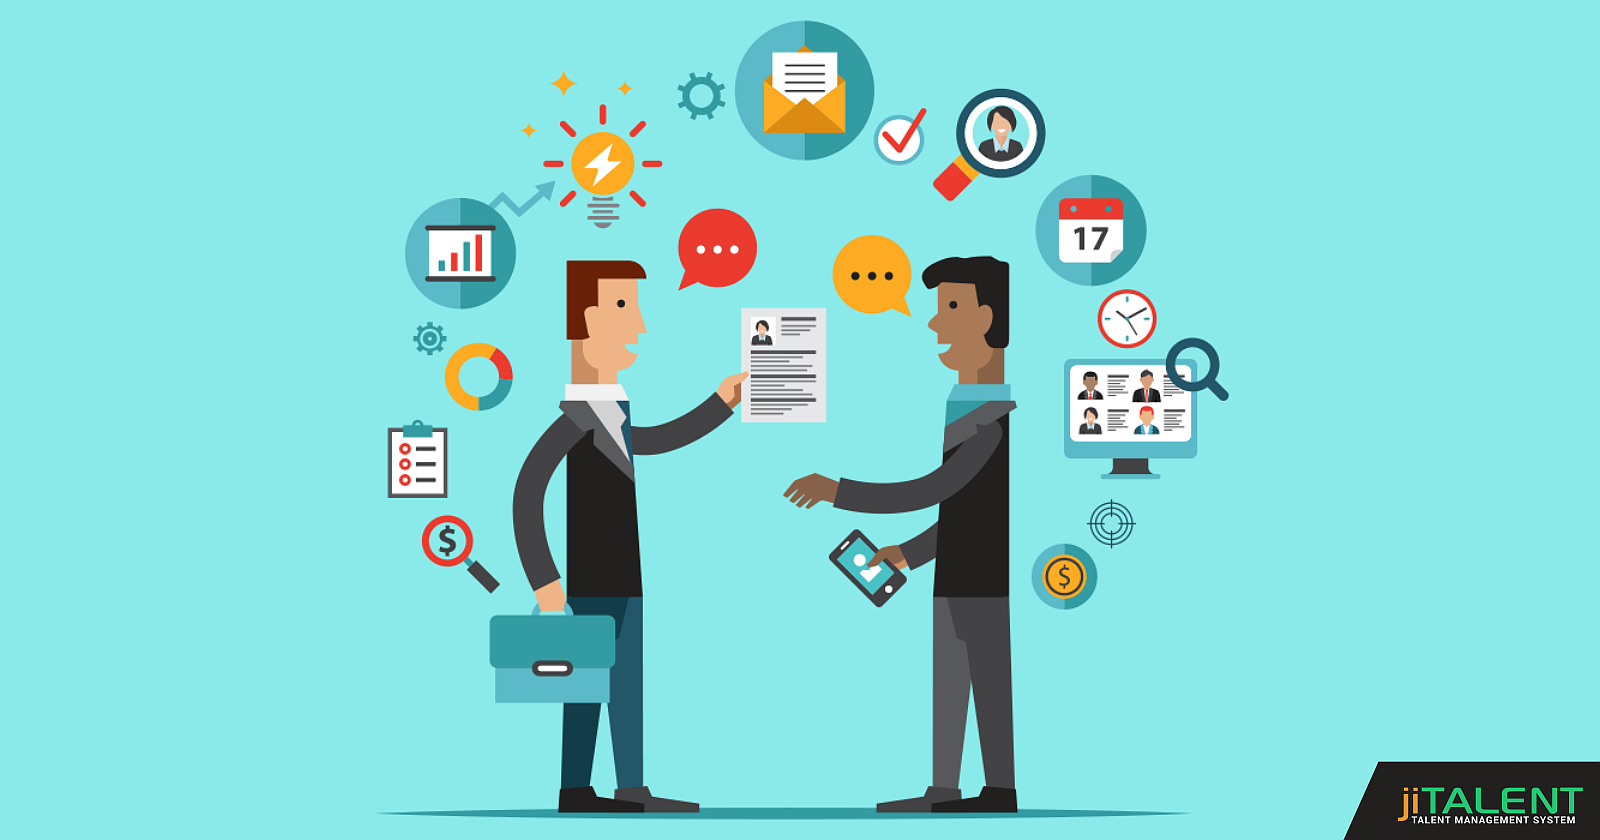 Top 5 Recruitment Trends For the HR industry